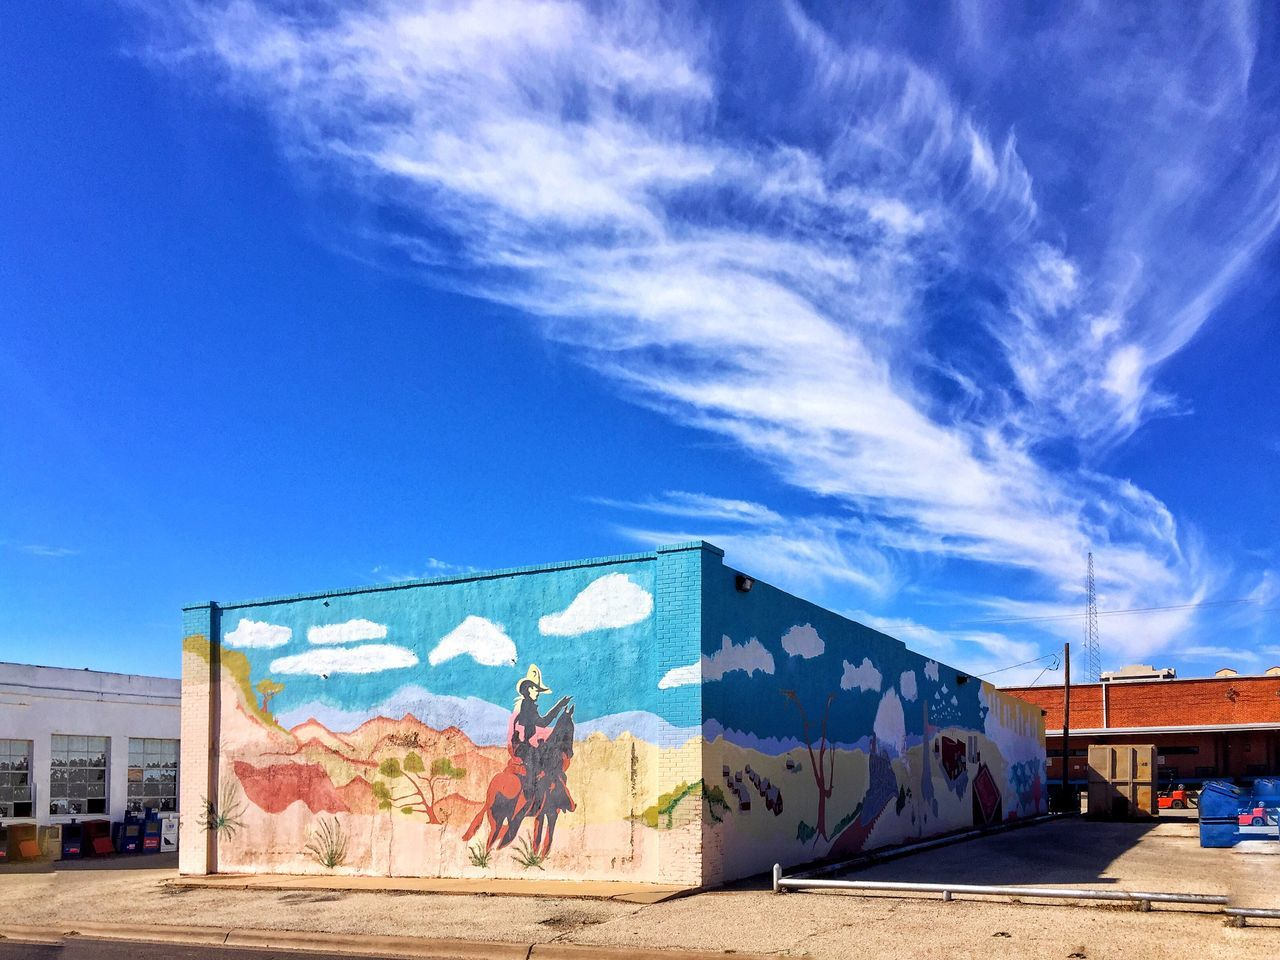 Sky Built Structure Sunlight Architecture Outdoors Cloud - Sky Day Building Exterior No People Mural Art Westtexasskies Western Scene Texas Landscape Texas Skies City Light